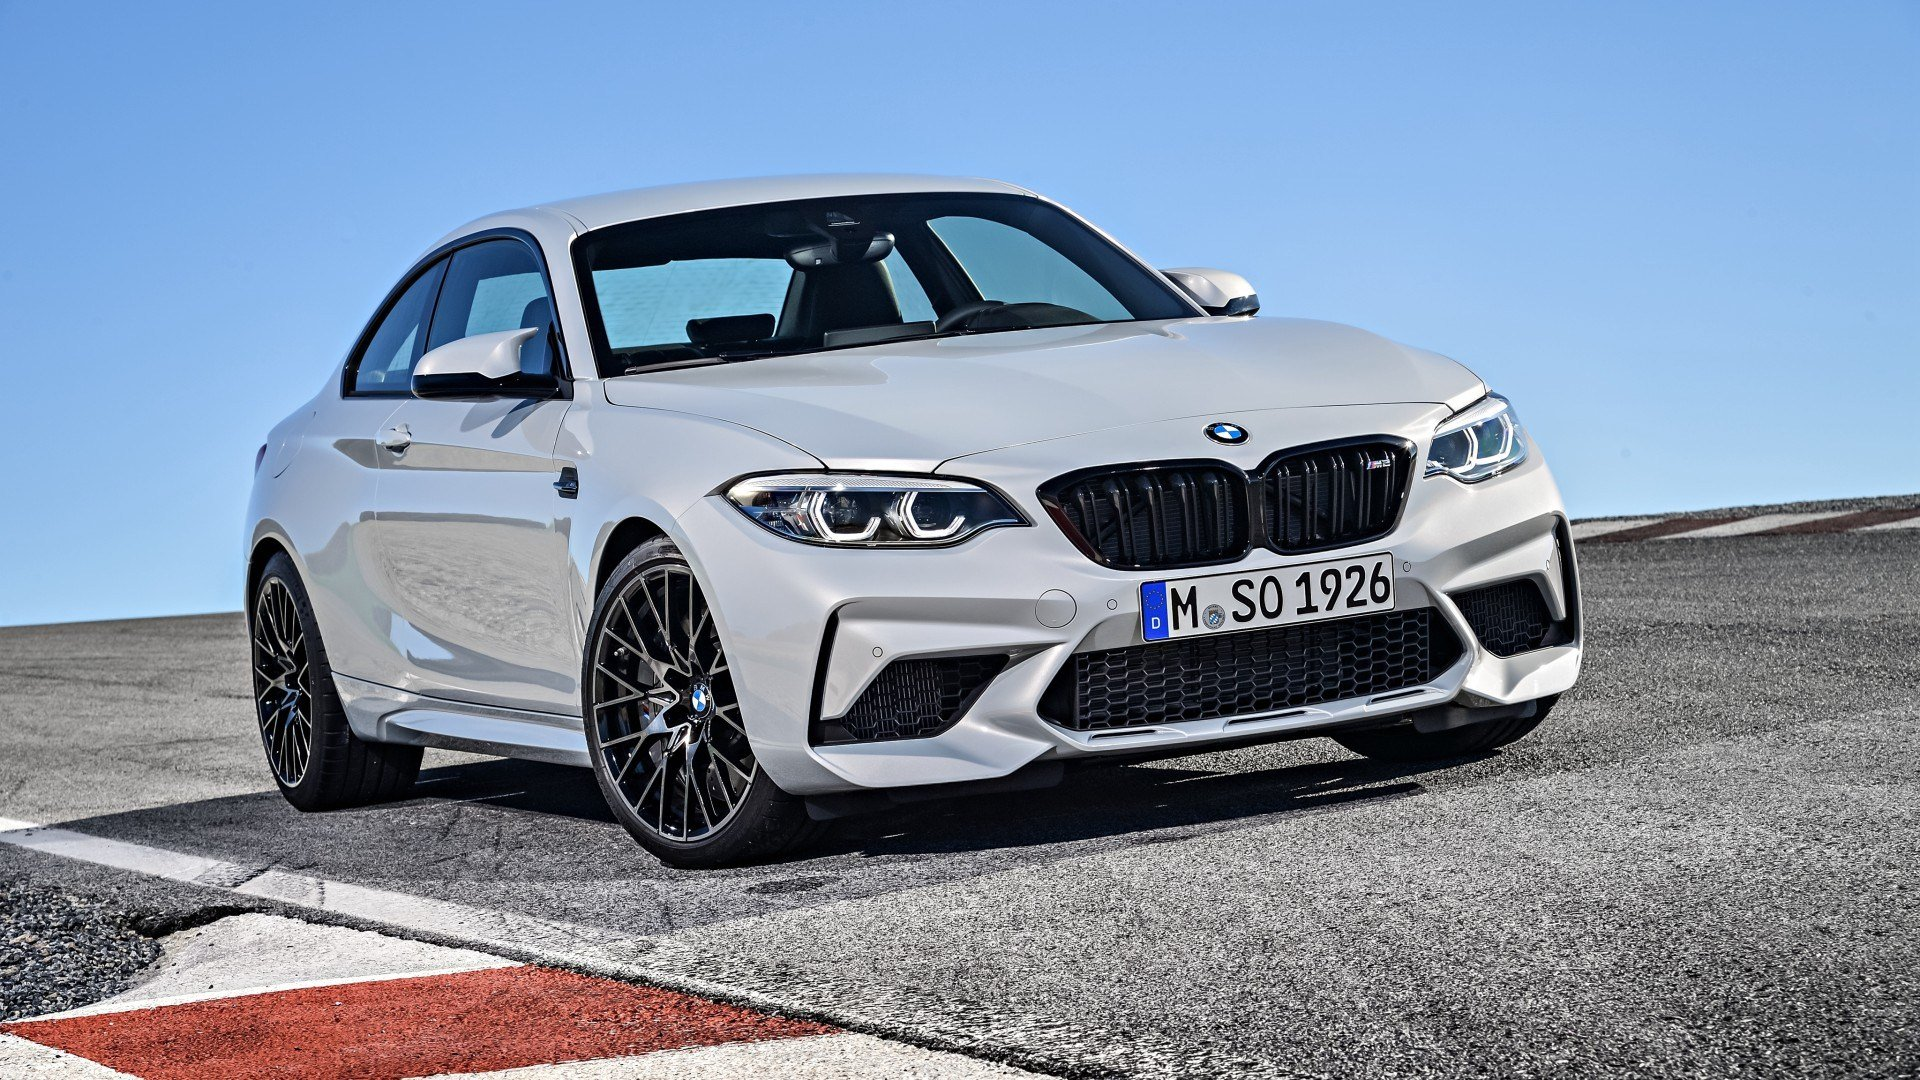 Latest Wallpaper Bmw M2 Competition 2018 4K Automotive Cars 13174 Free Download